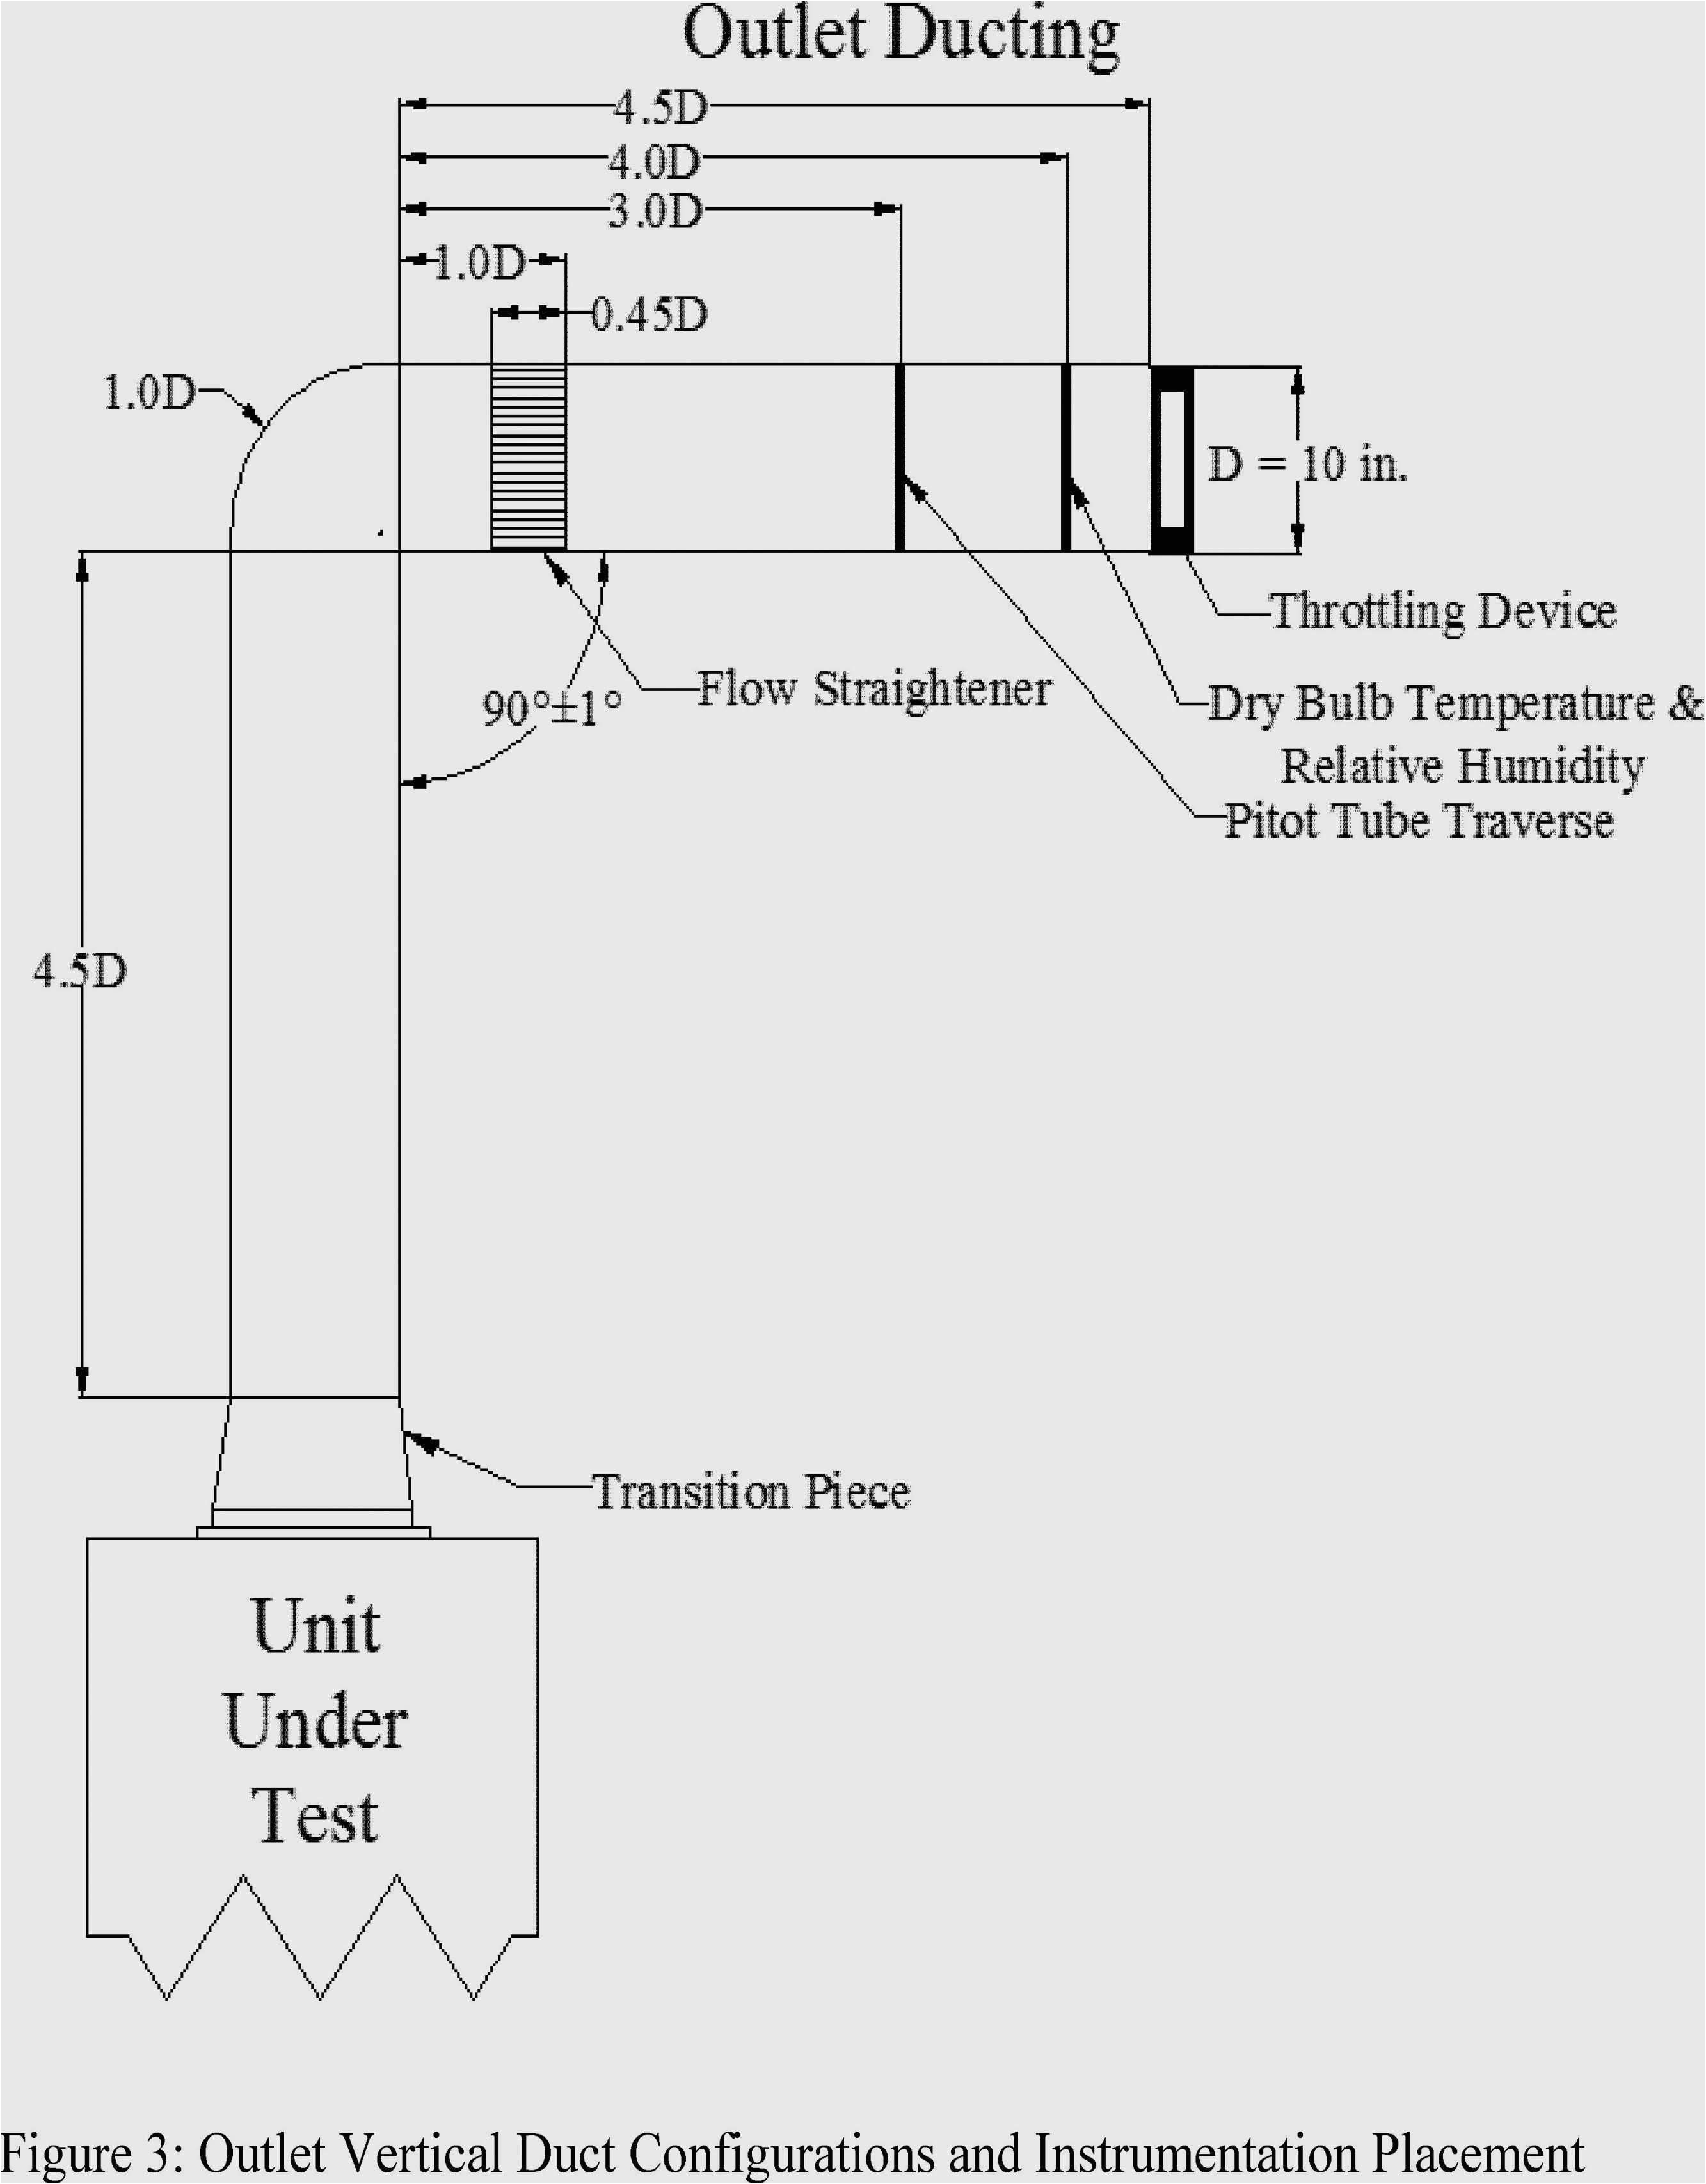 Wiring Diagram for A 3 Way Switch Wiring Diagram 3 Way Switch Inspirational 3 Way Switch Wiring